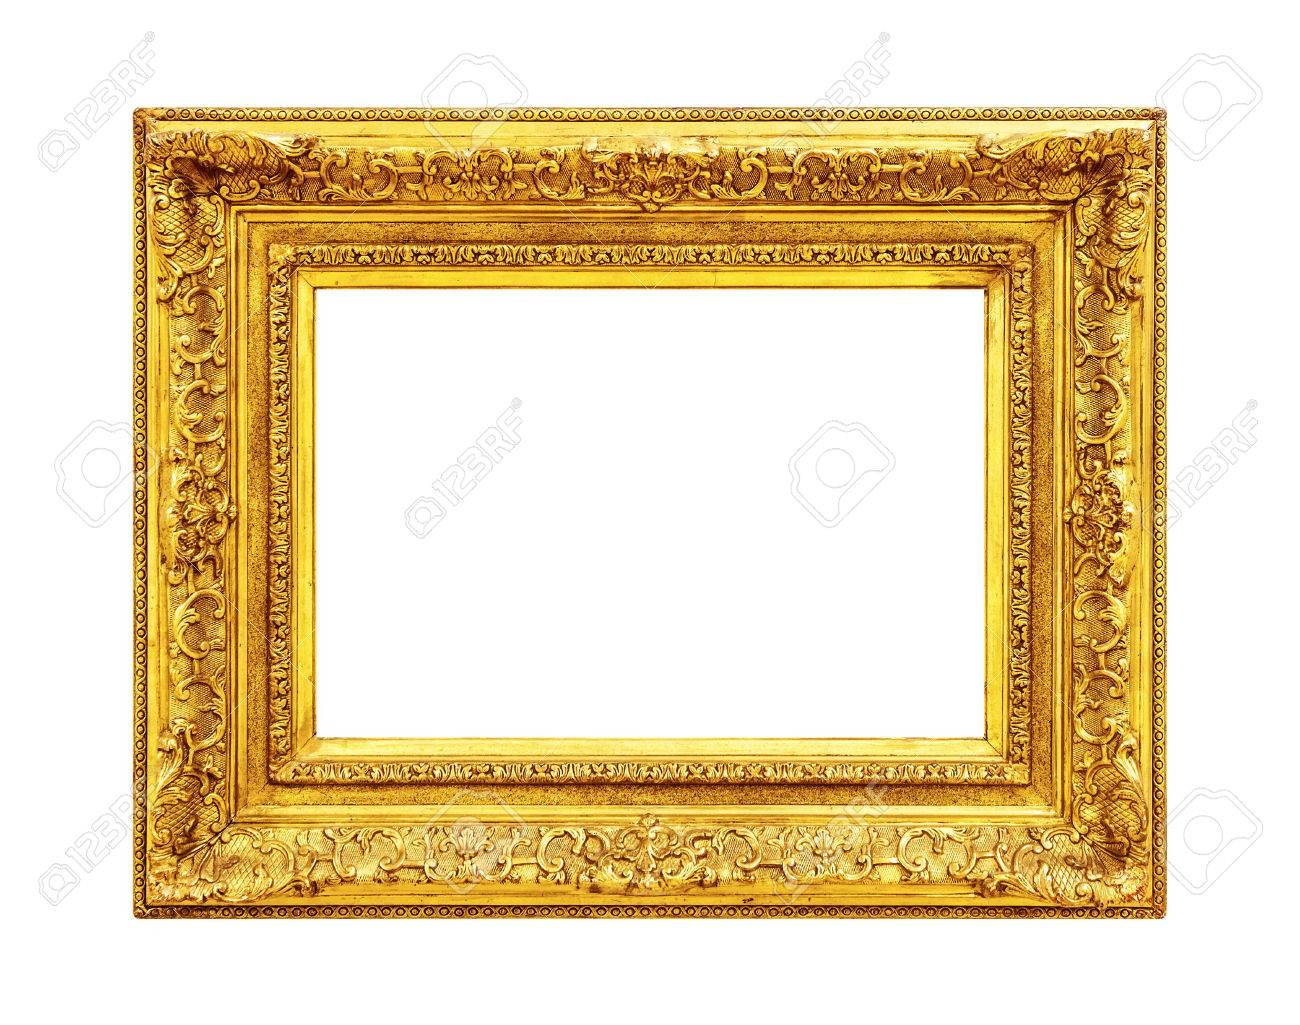 a17857bcef1 Antique ornate gold frame isolated on white background Stock Photo -  64137739